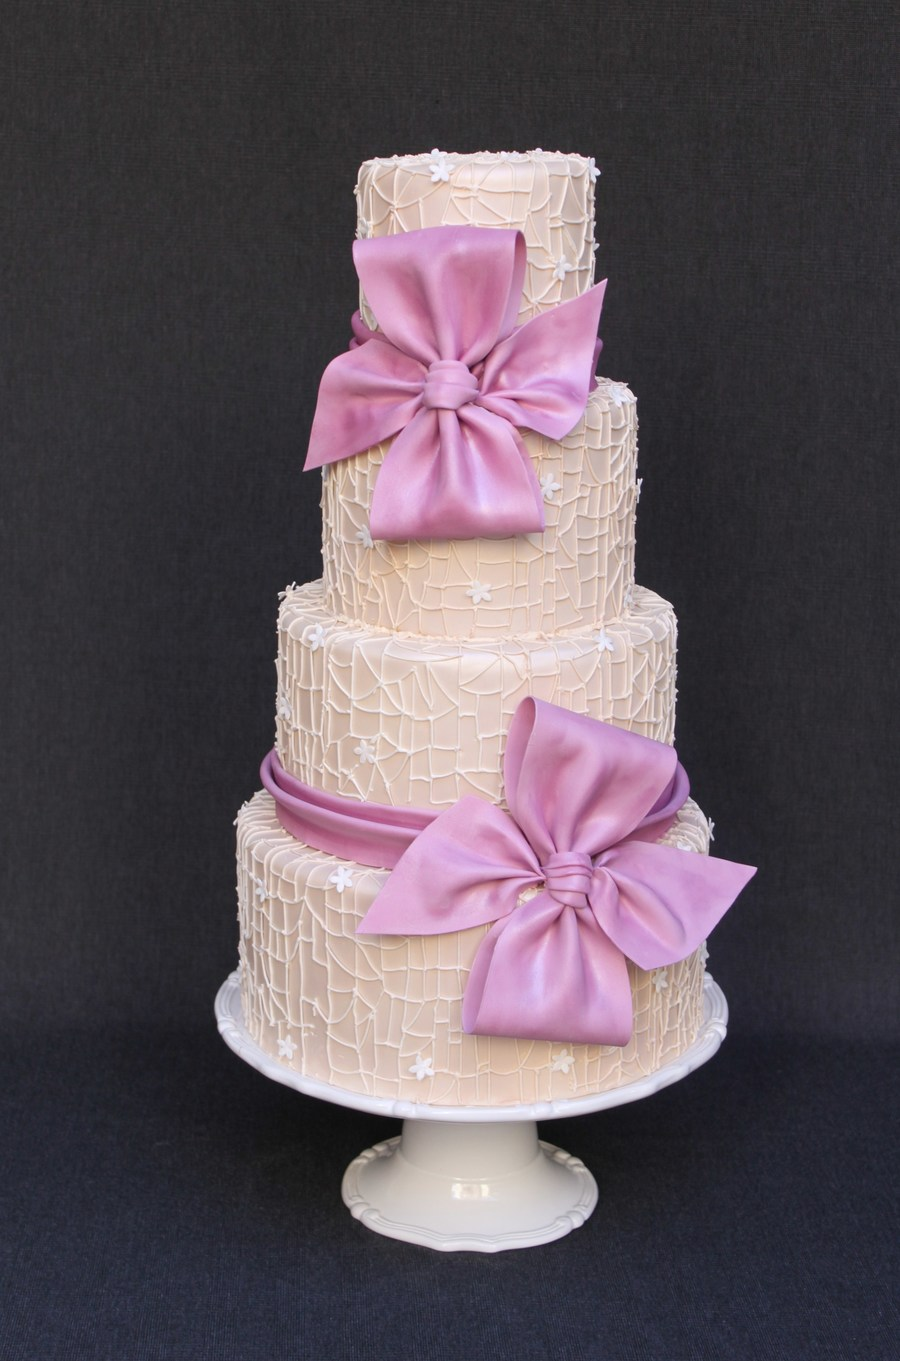 Spiderweb Lace And Light Plum Bows  on Cake Central